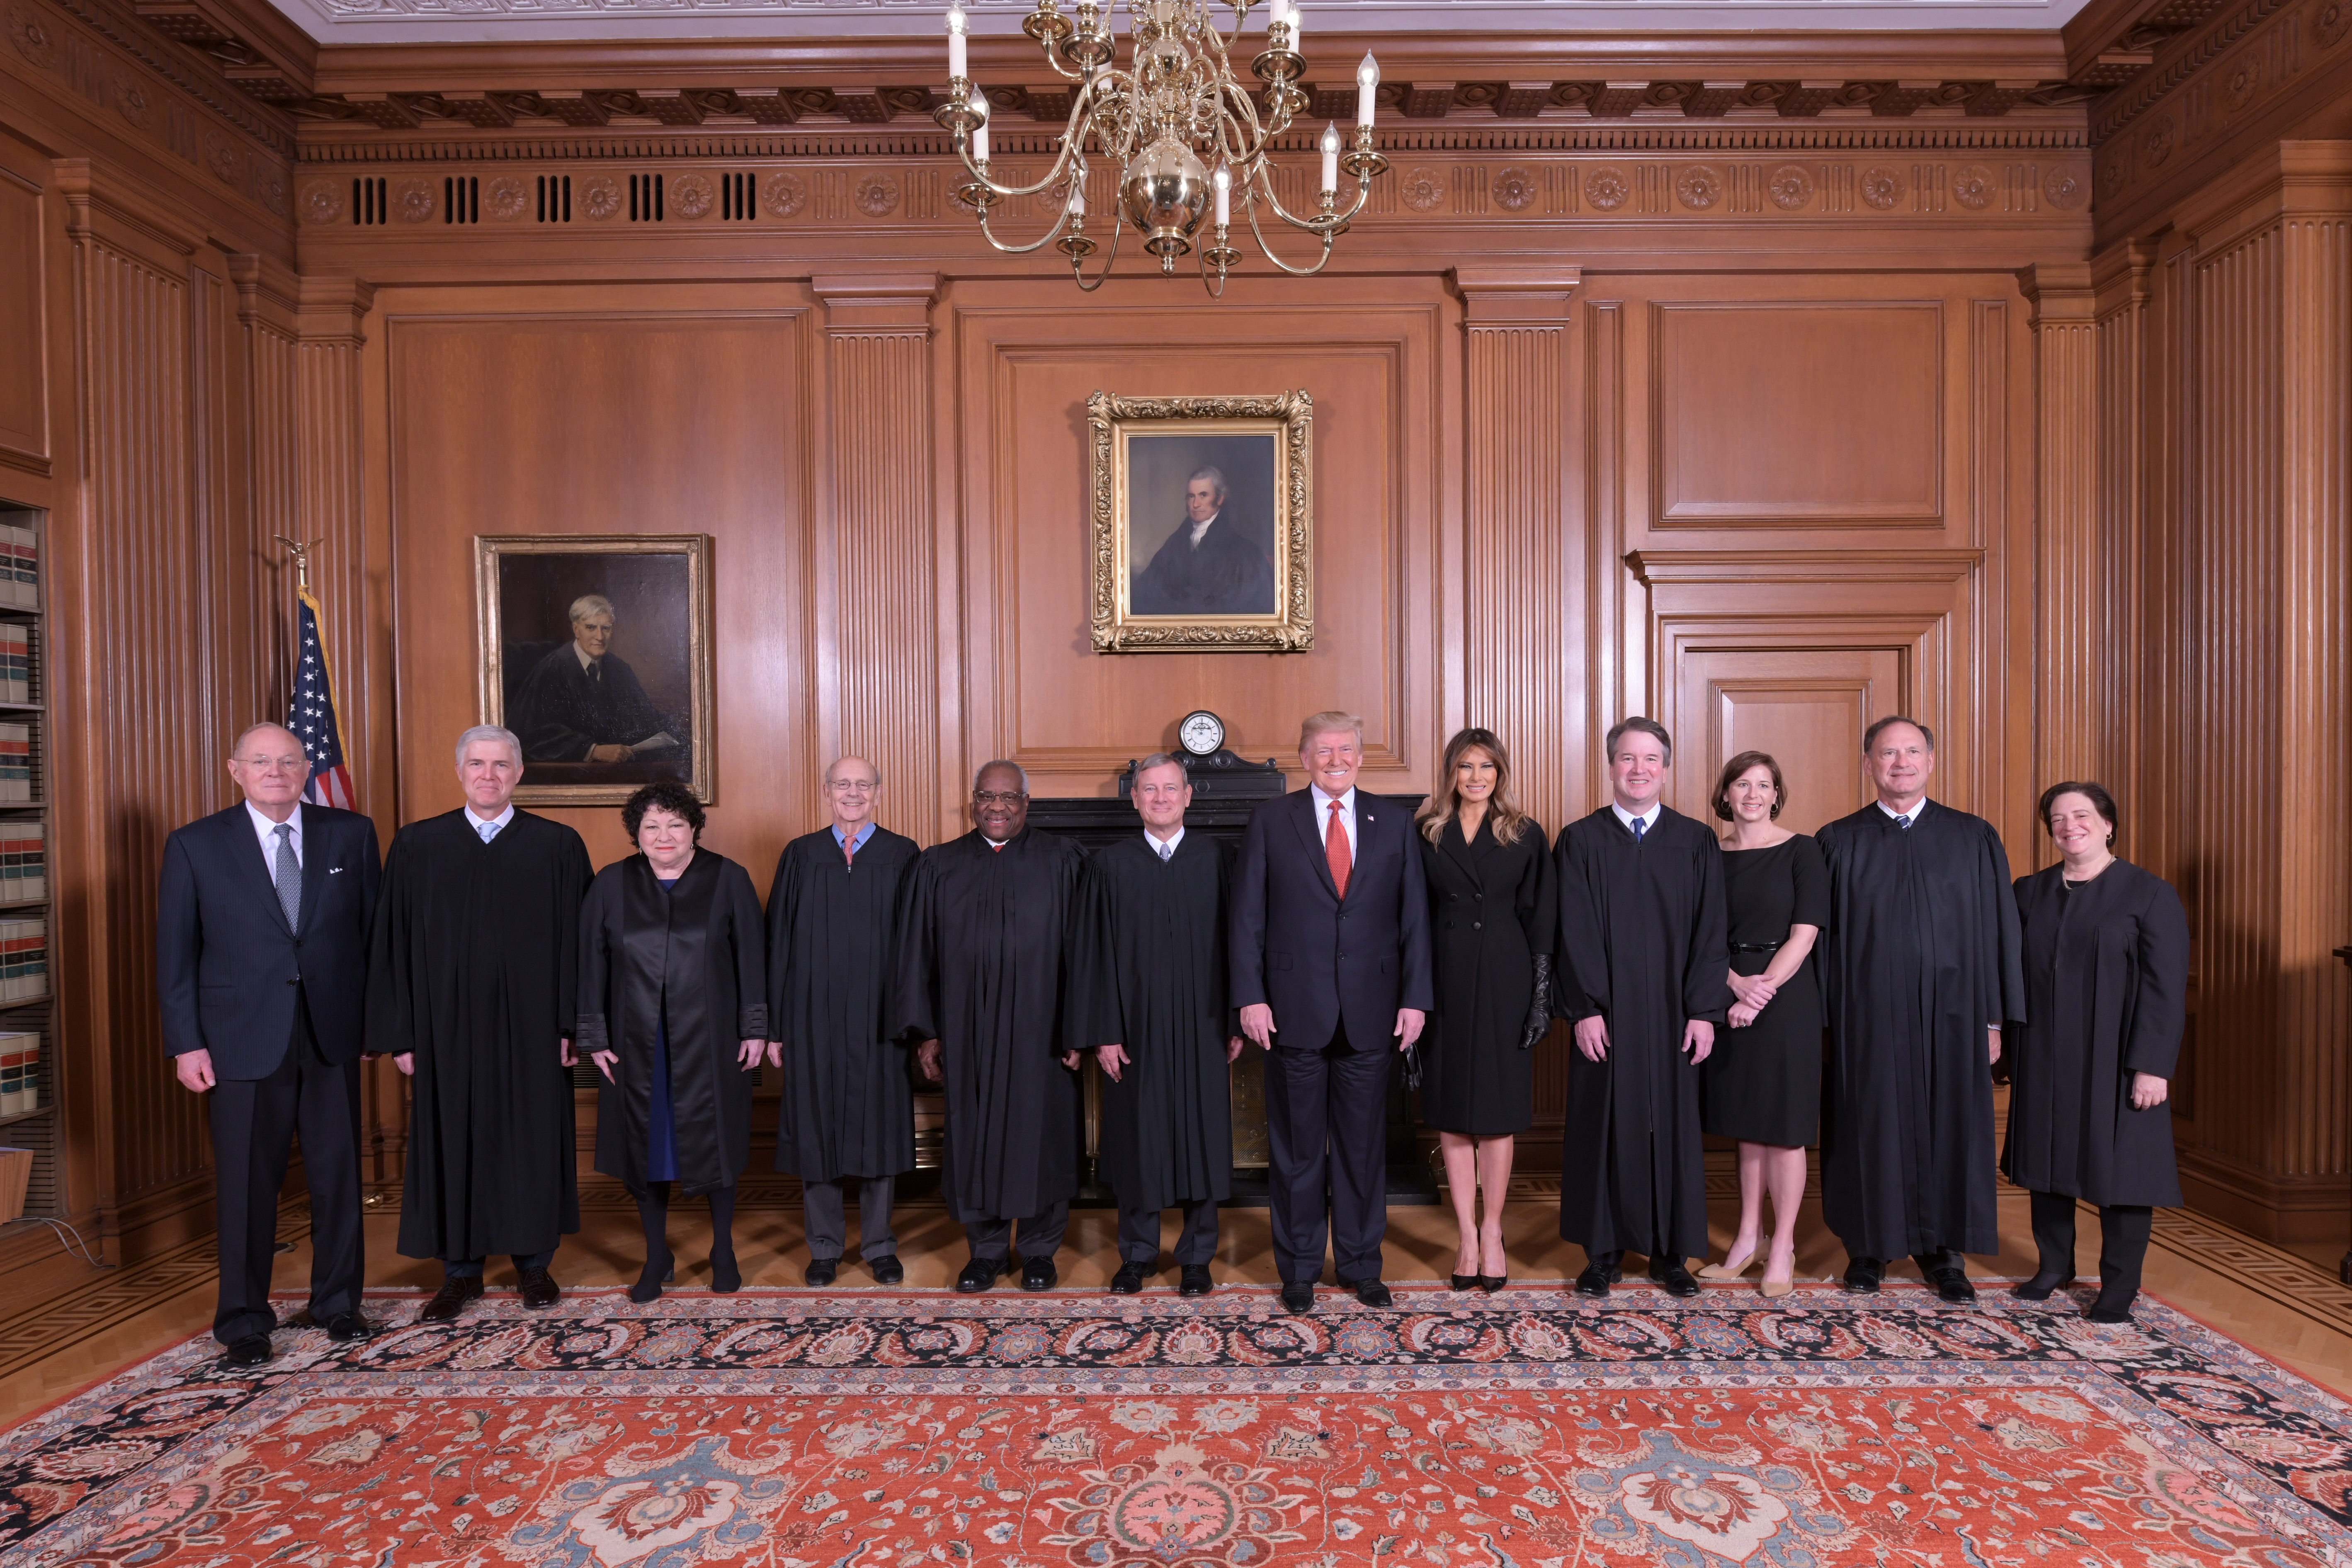 The President and First Lady with Associate Justice Brett M. Kavanaugh and his wife, Mrs. Ashley Kavanaugh, and the other members of the Supreme Court in the Justices' Conference Room at a courtesy visit prior to the investiture ceremony. Fred Schilling, Collection of the Supreme Court of the United States